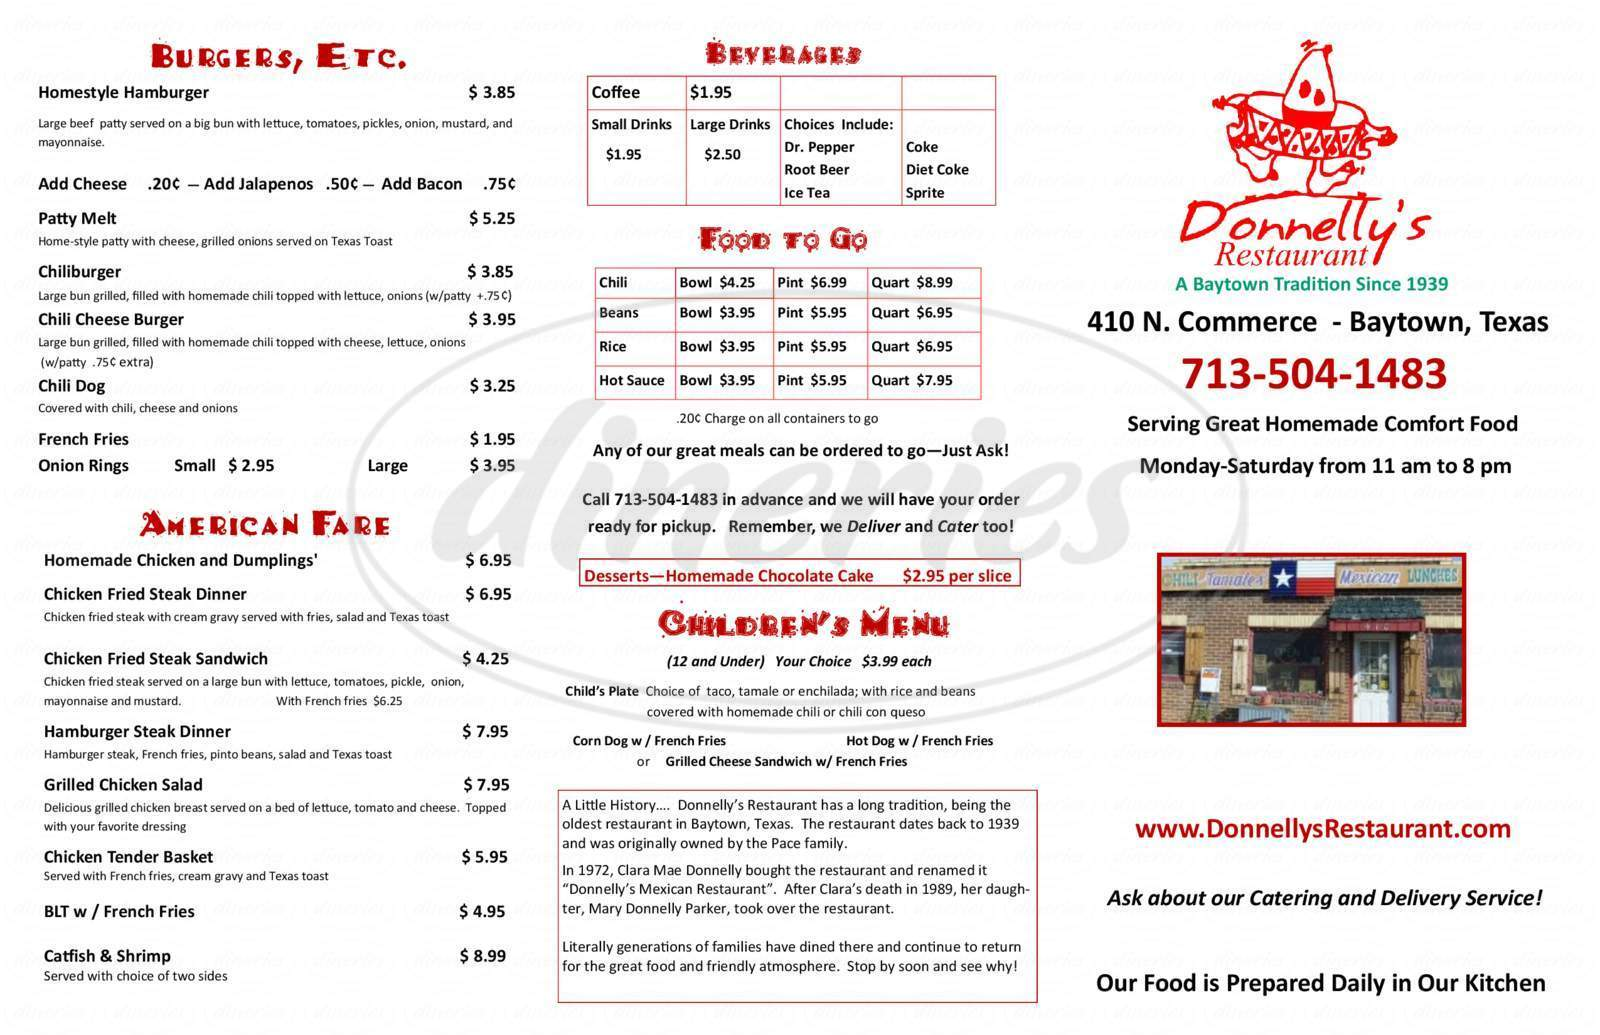 menu for Donnelly's Mexican Restaurant